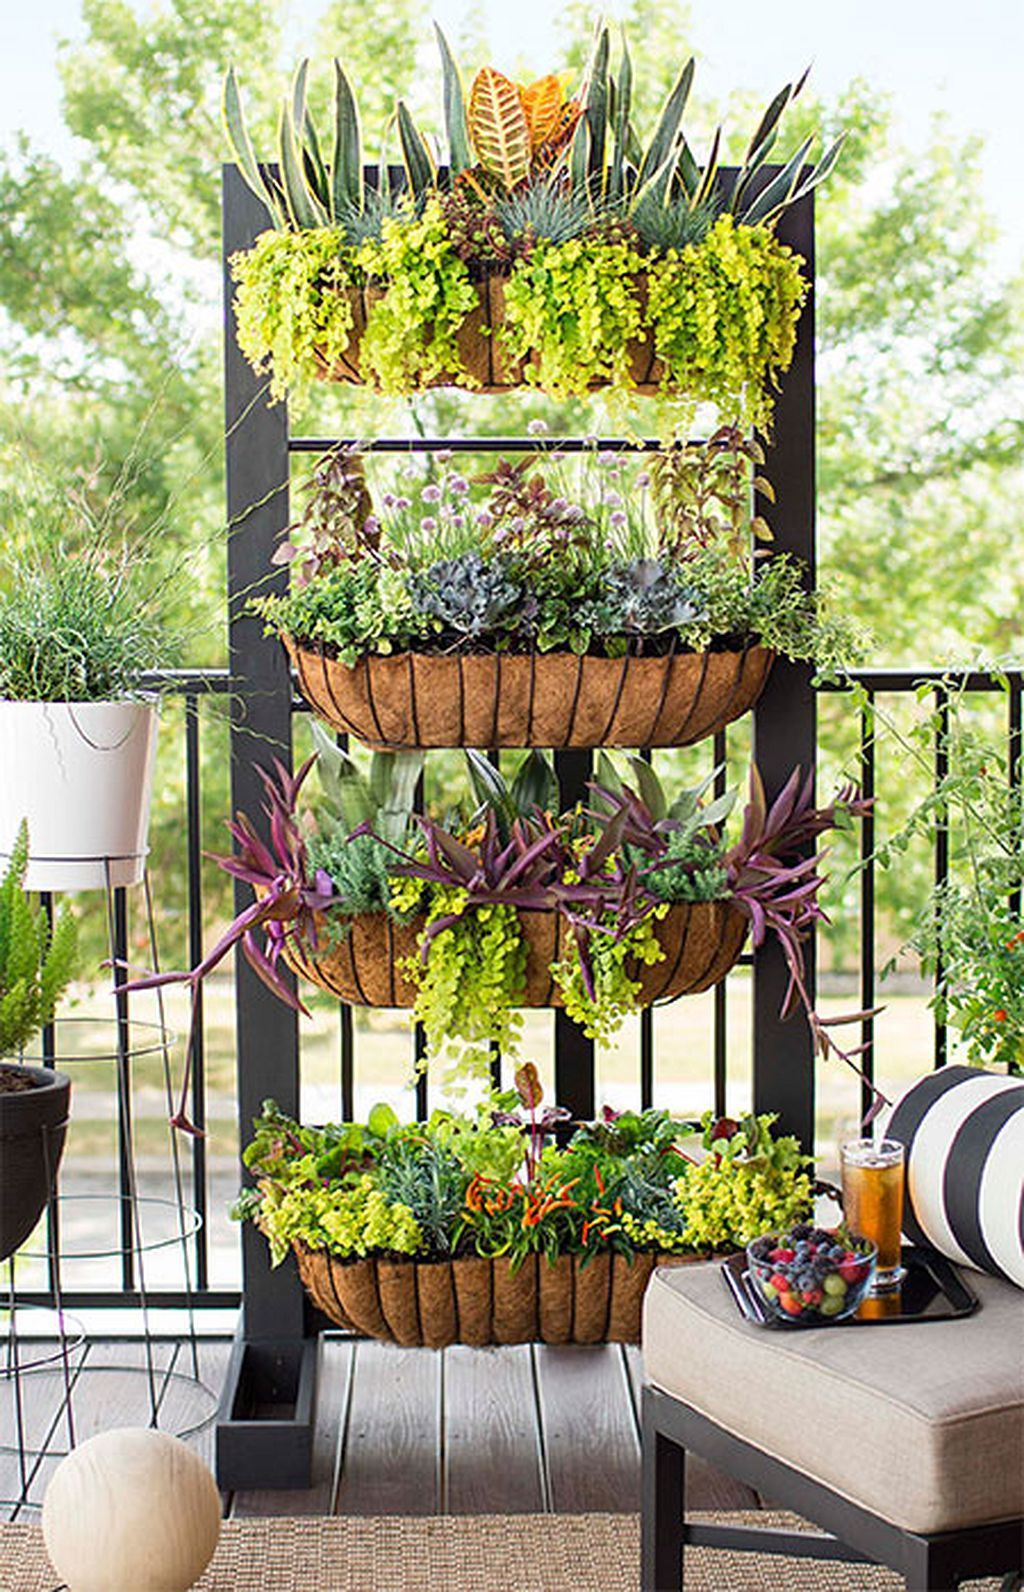 Diy garden ideas pinterest  Incredible Small Balcony Garden Ideas diygardenideassmall  DIY